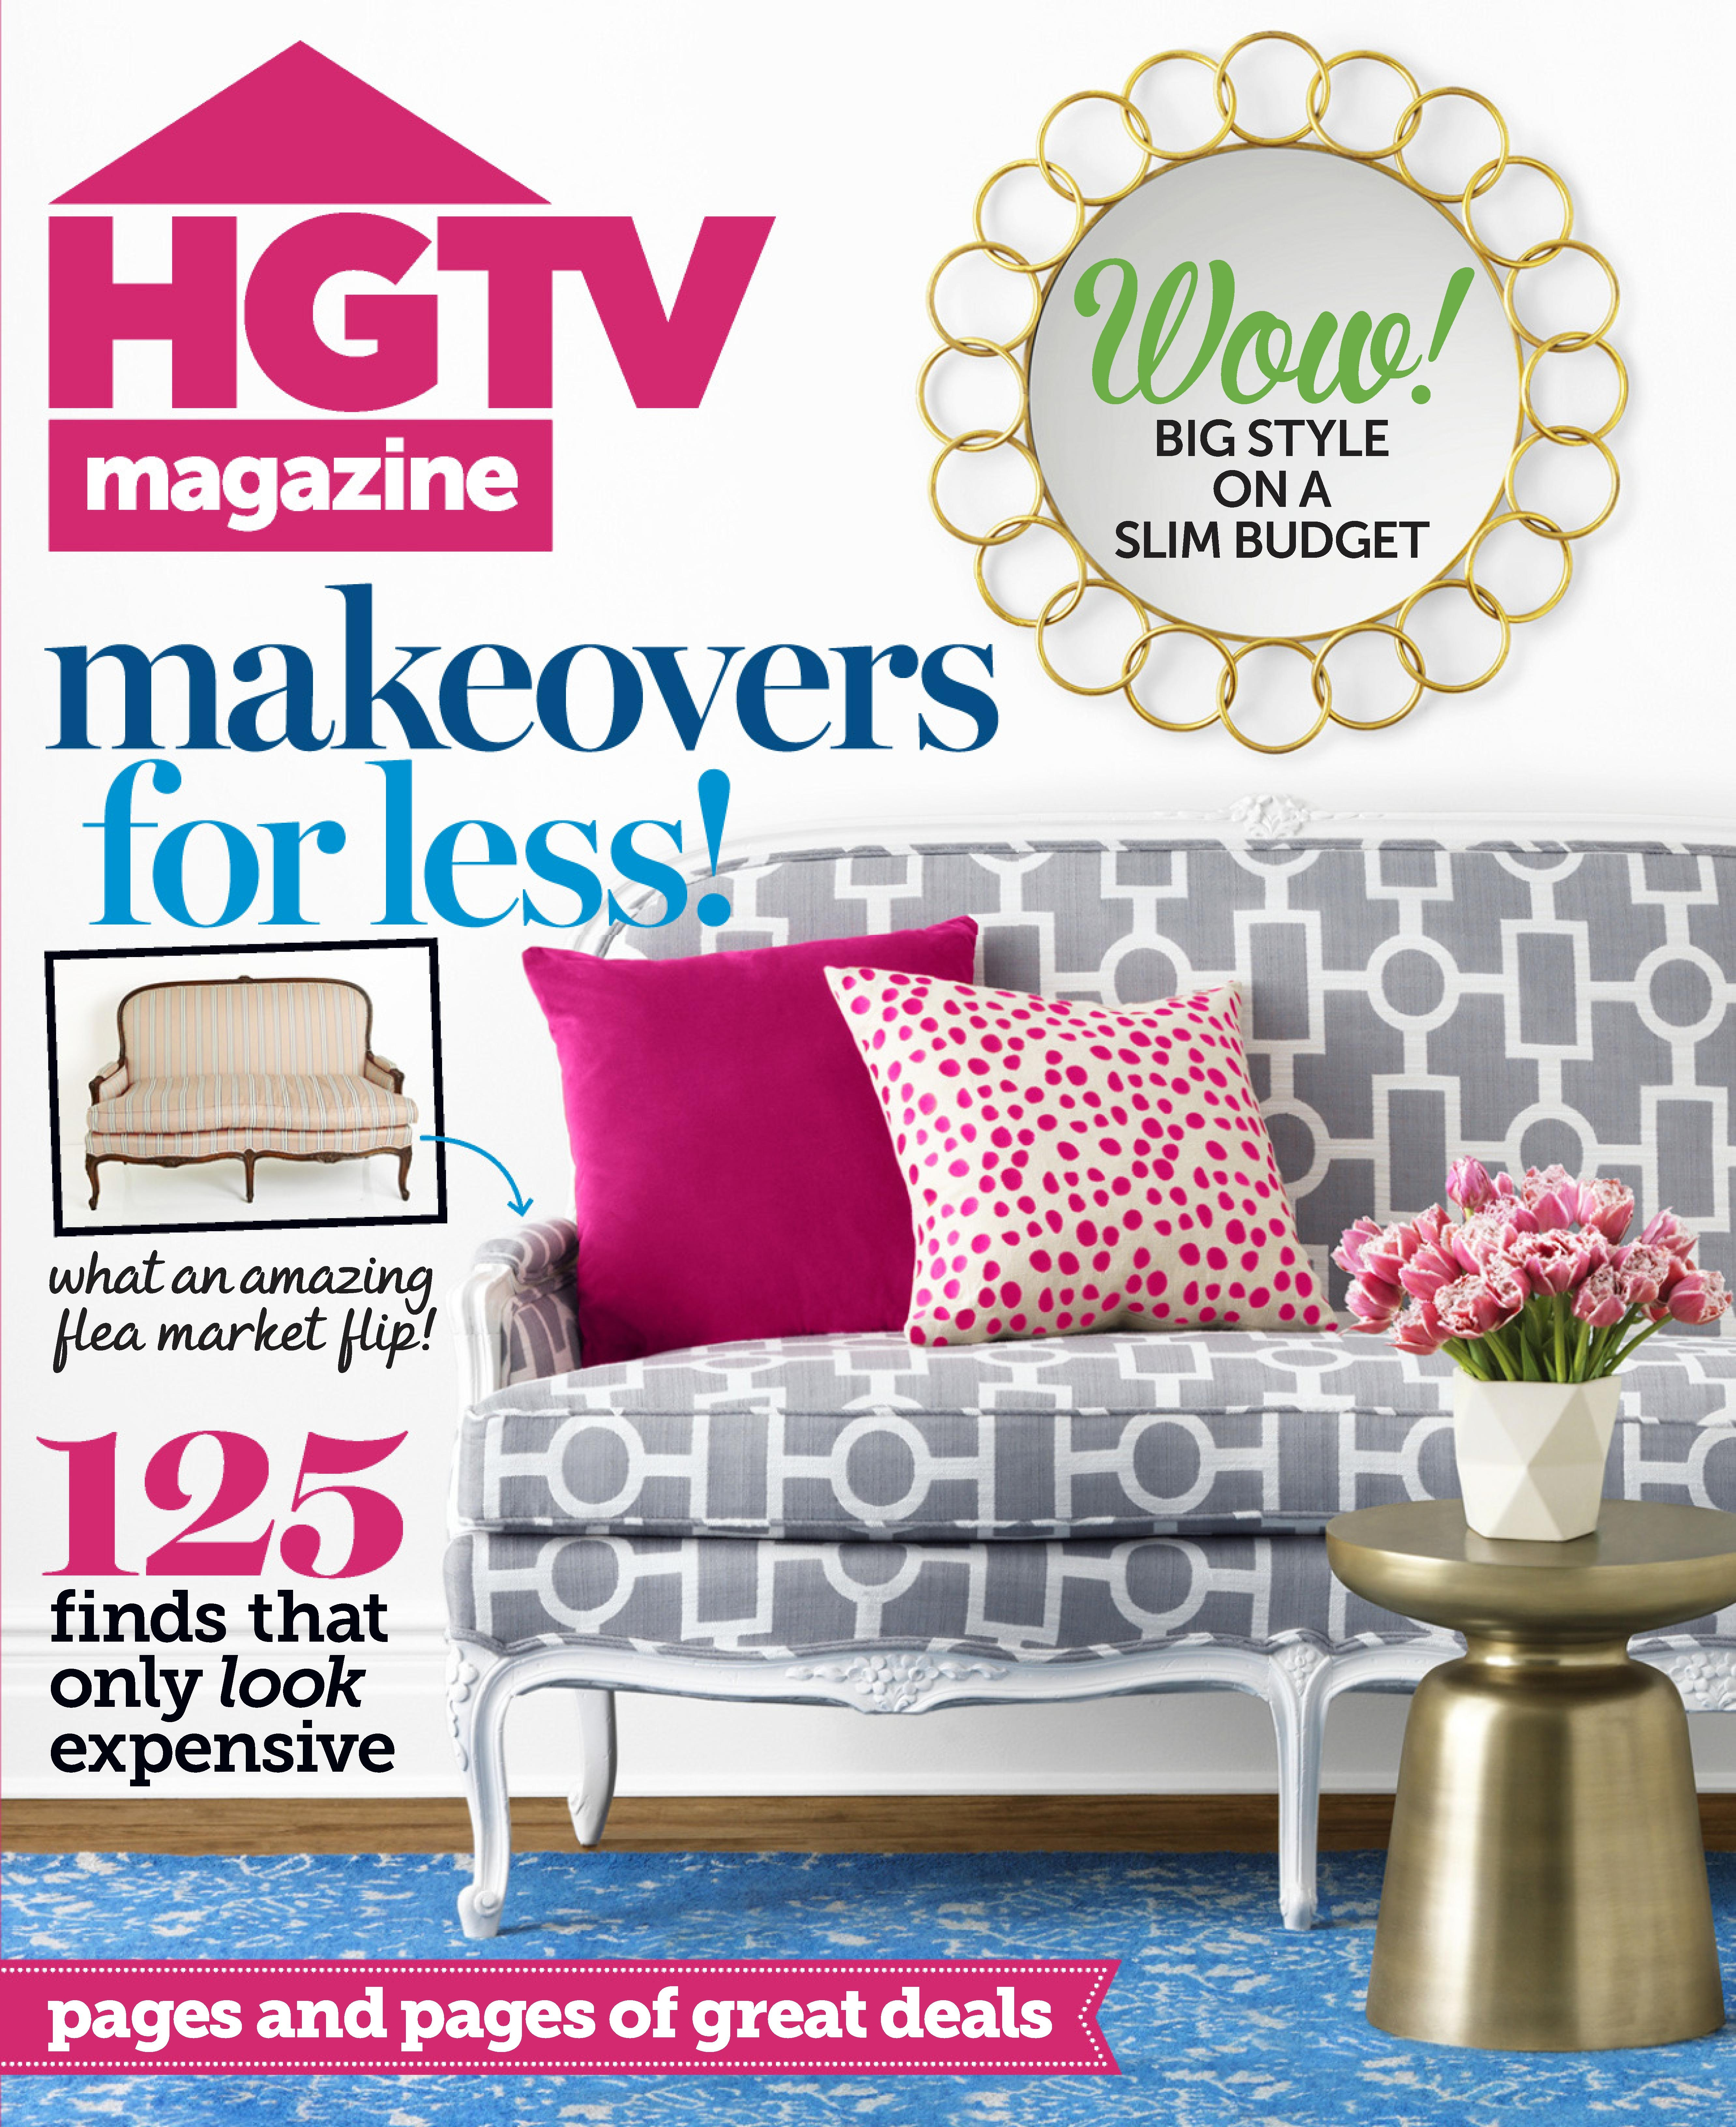 Hgtv magazine cover giveaway